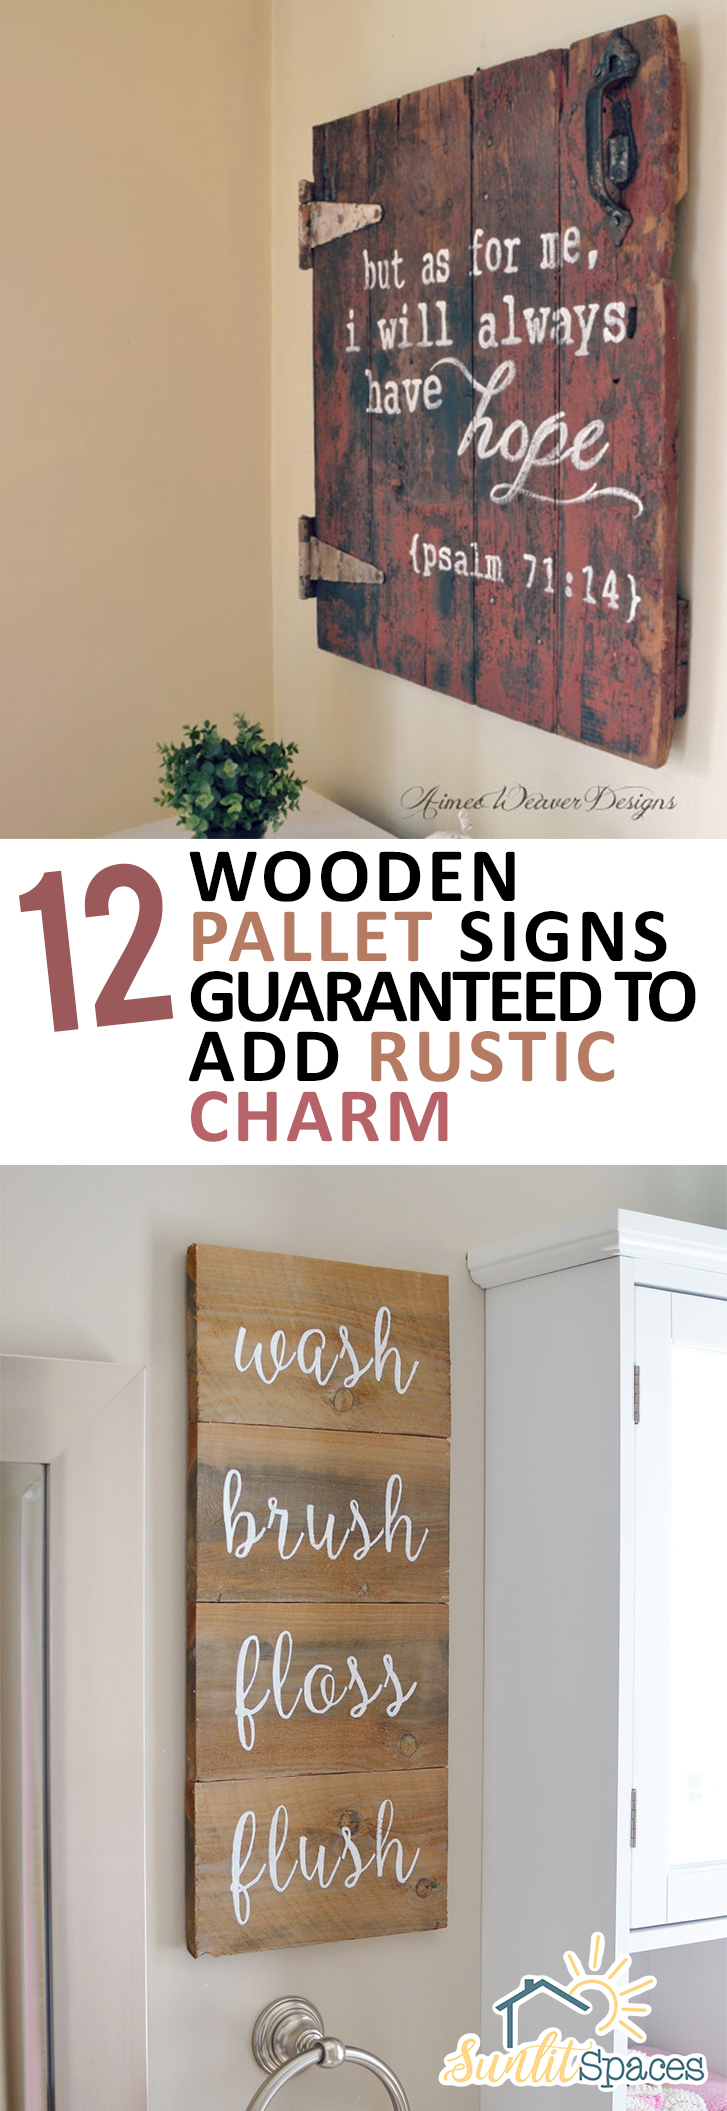 12 Wooden Pallet Signs Guaranteed To Add Rustic Charm Sunlit Spaces Diy Home Decor Holiday And More